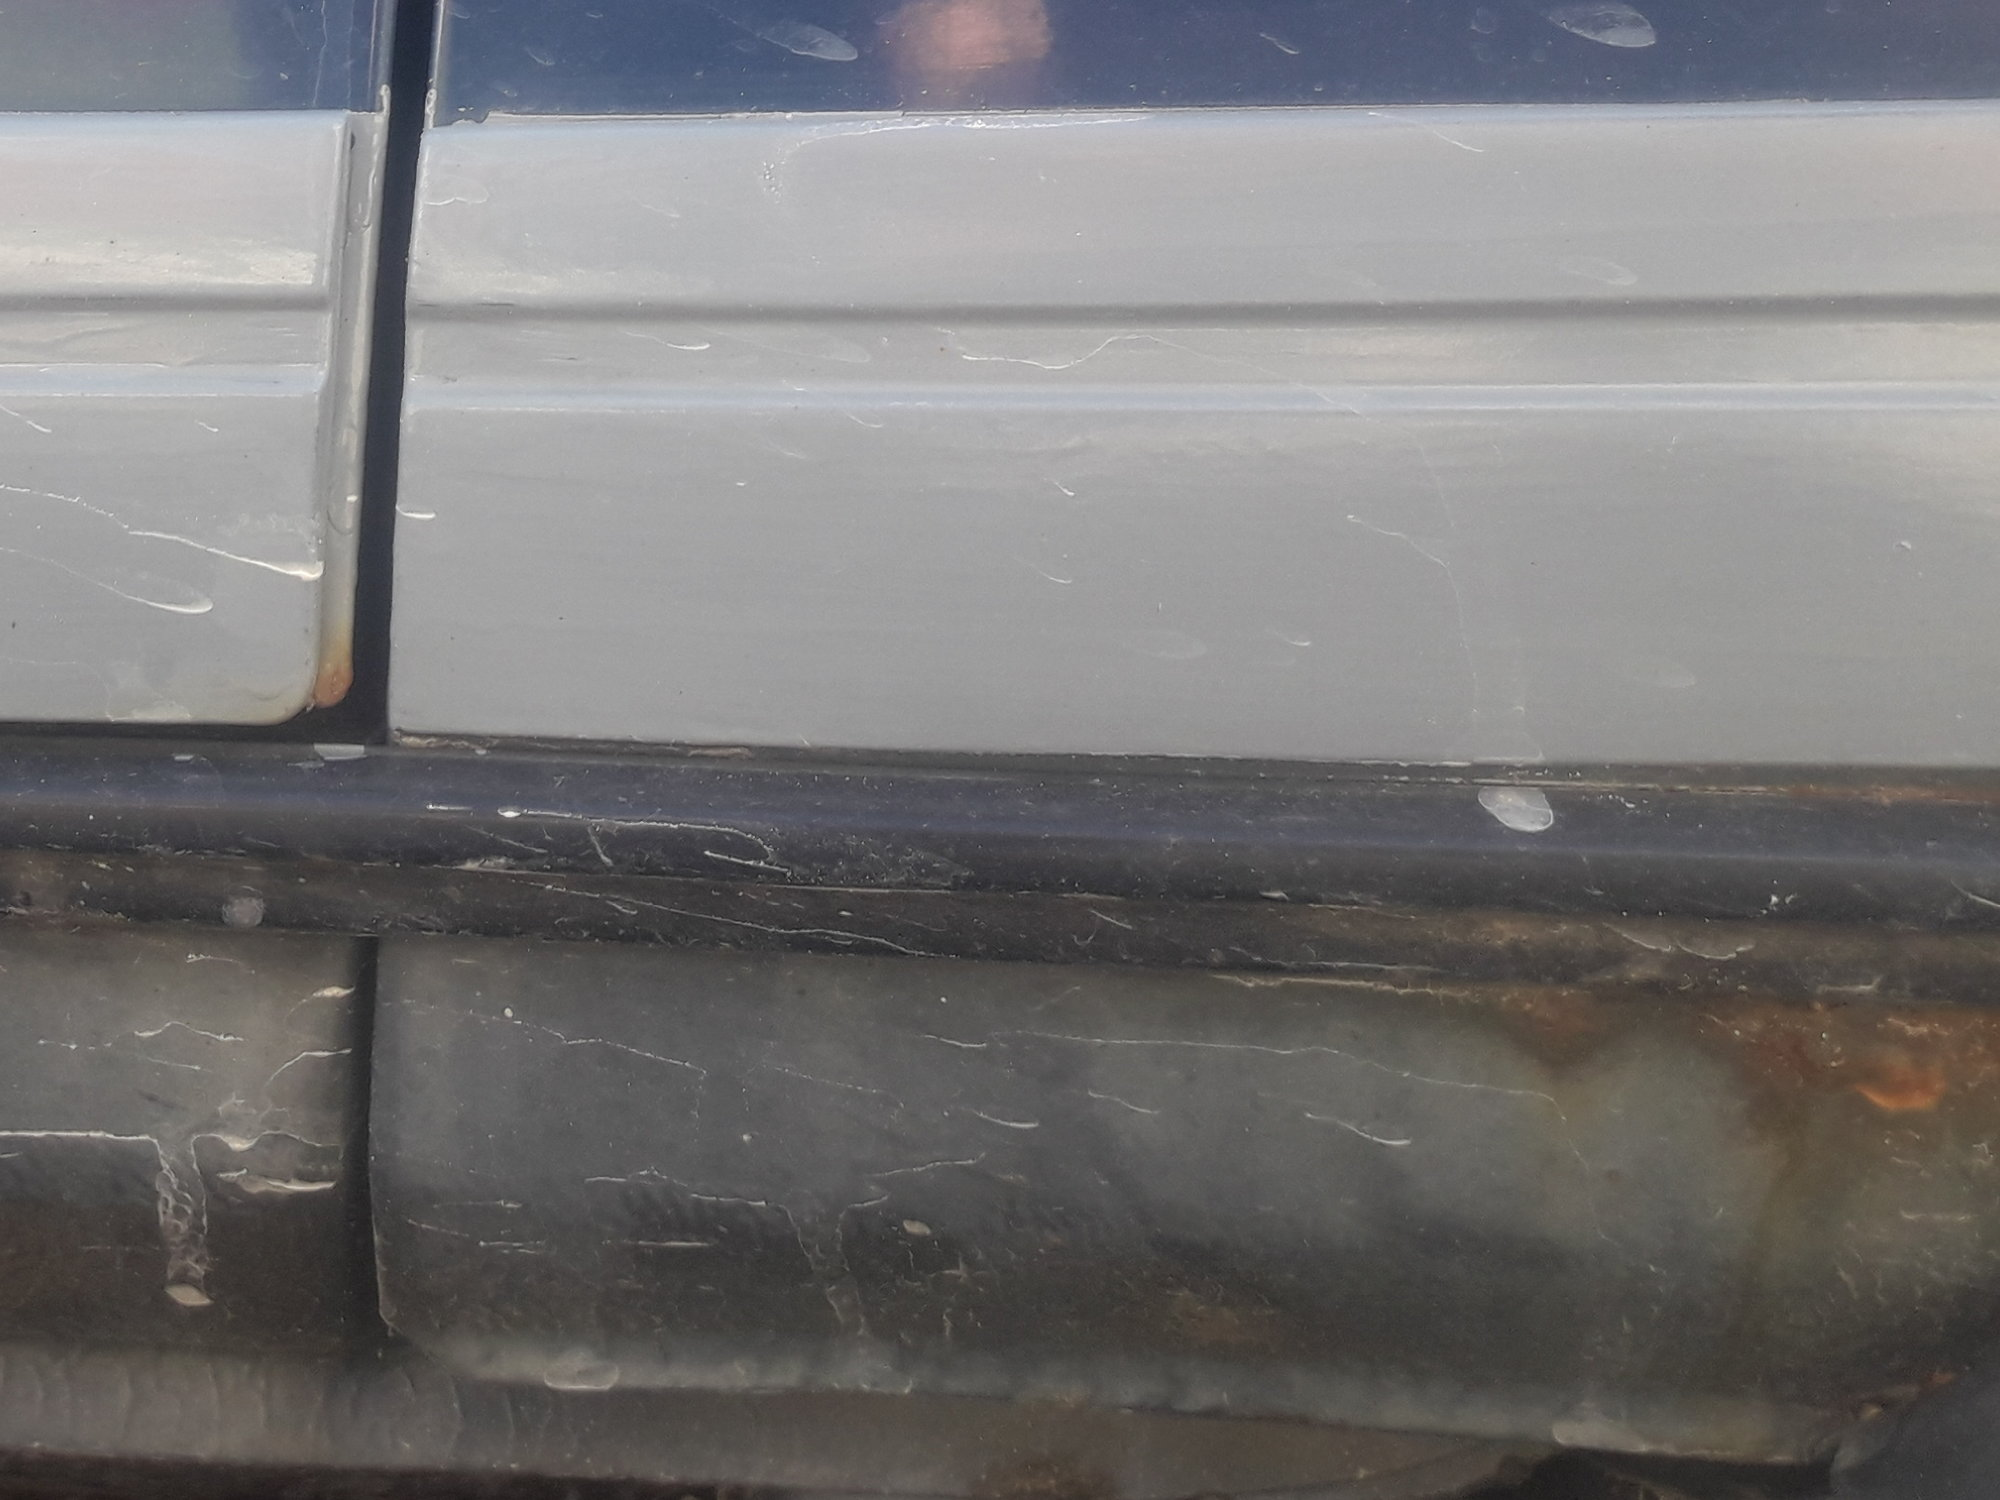 1991 Volvo 240, how bad is thia rust? - Volvo Forums - Volvo